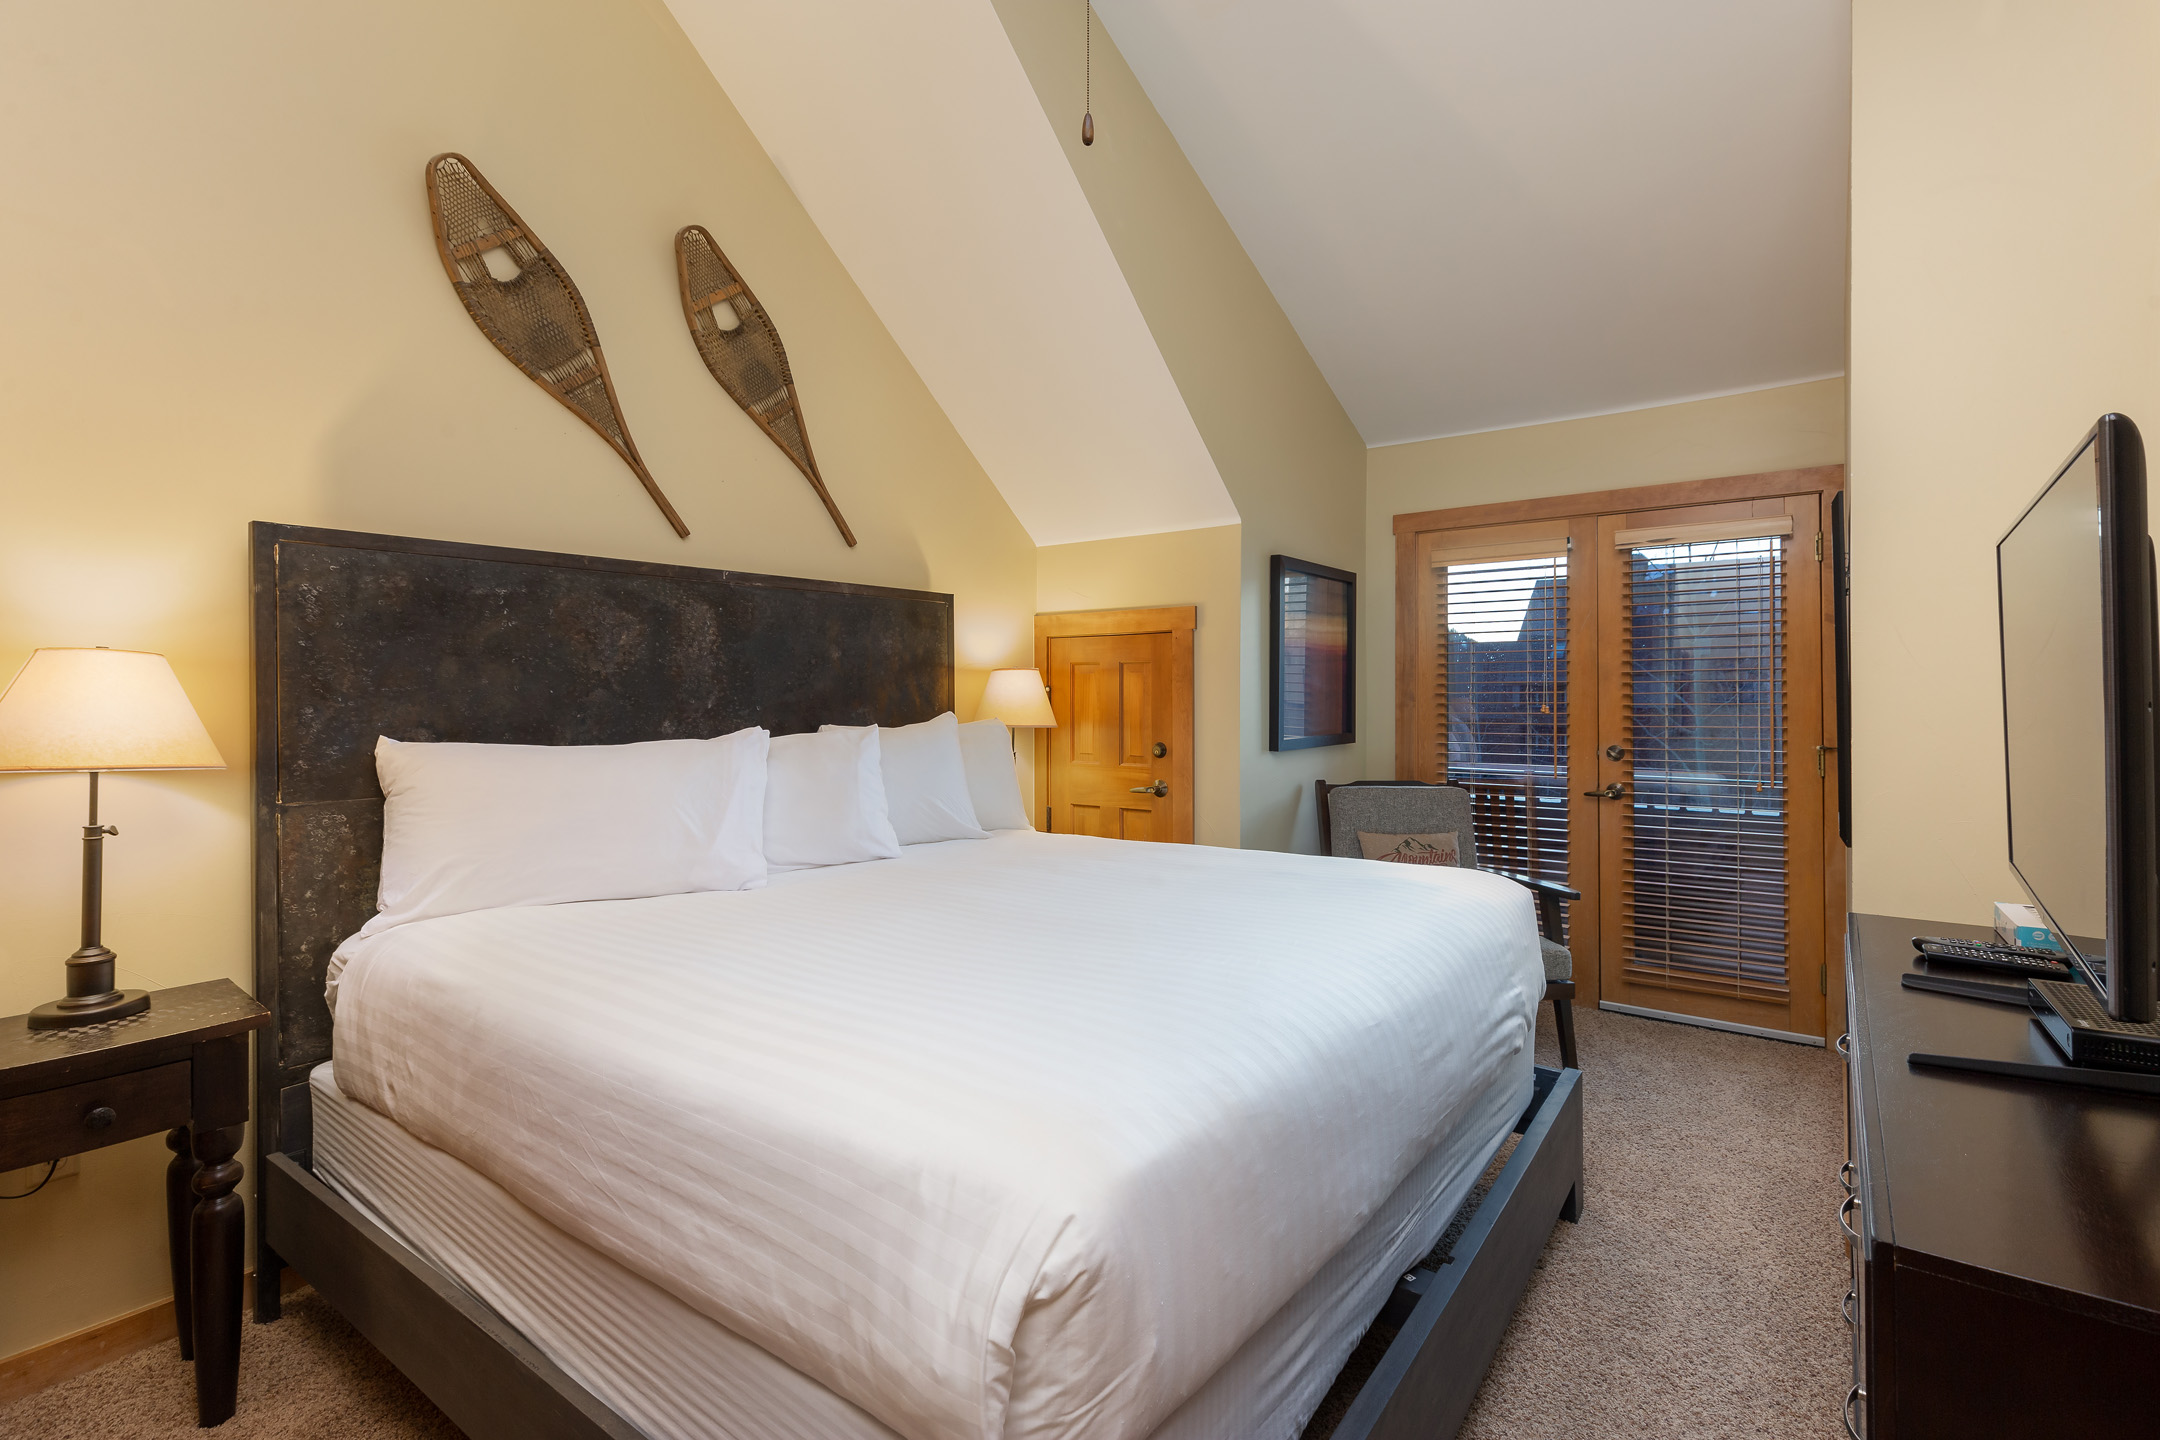 The bedroom features a king-sized bed on our Ivory White Bedding program, a flat screen TV and its own access to the main balcony.